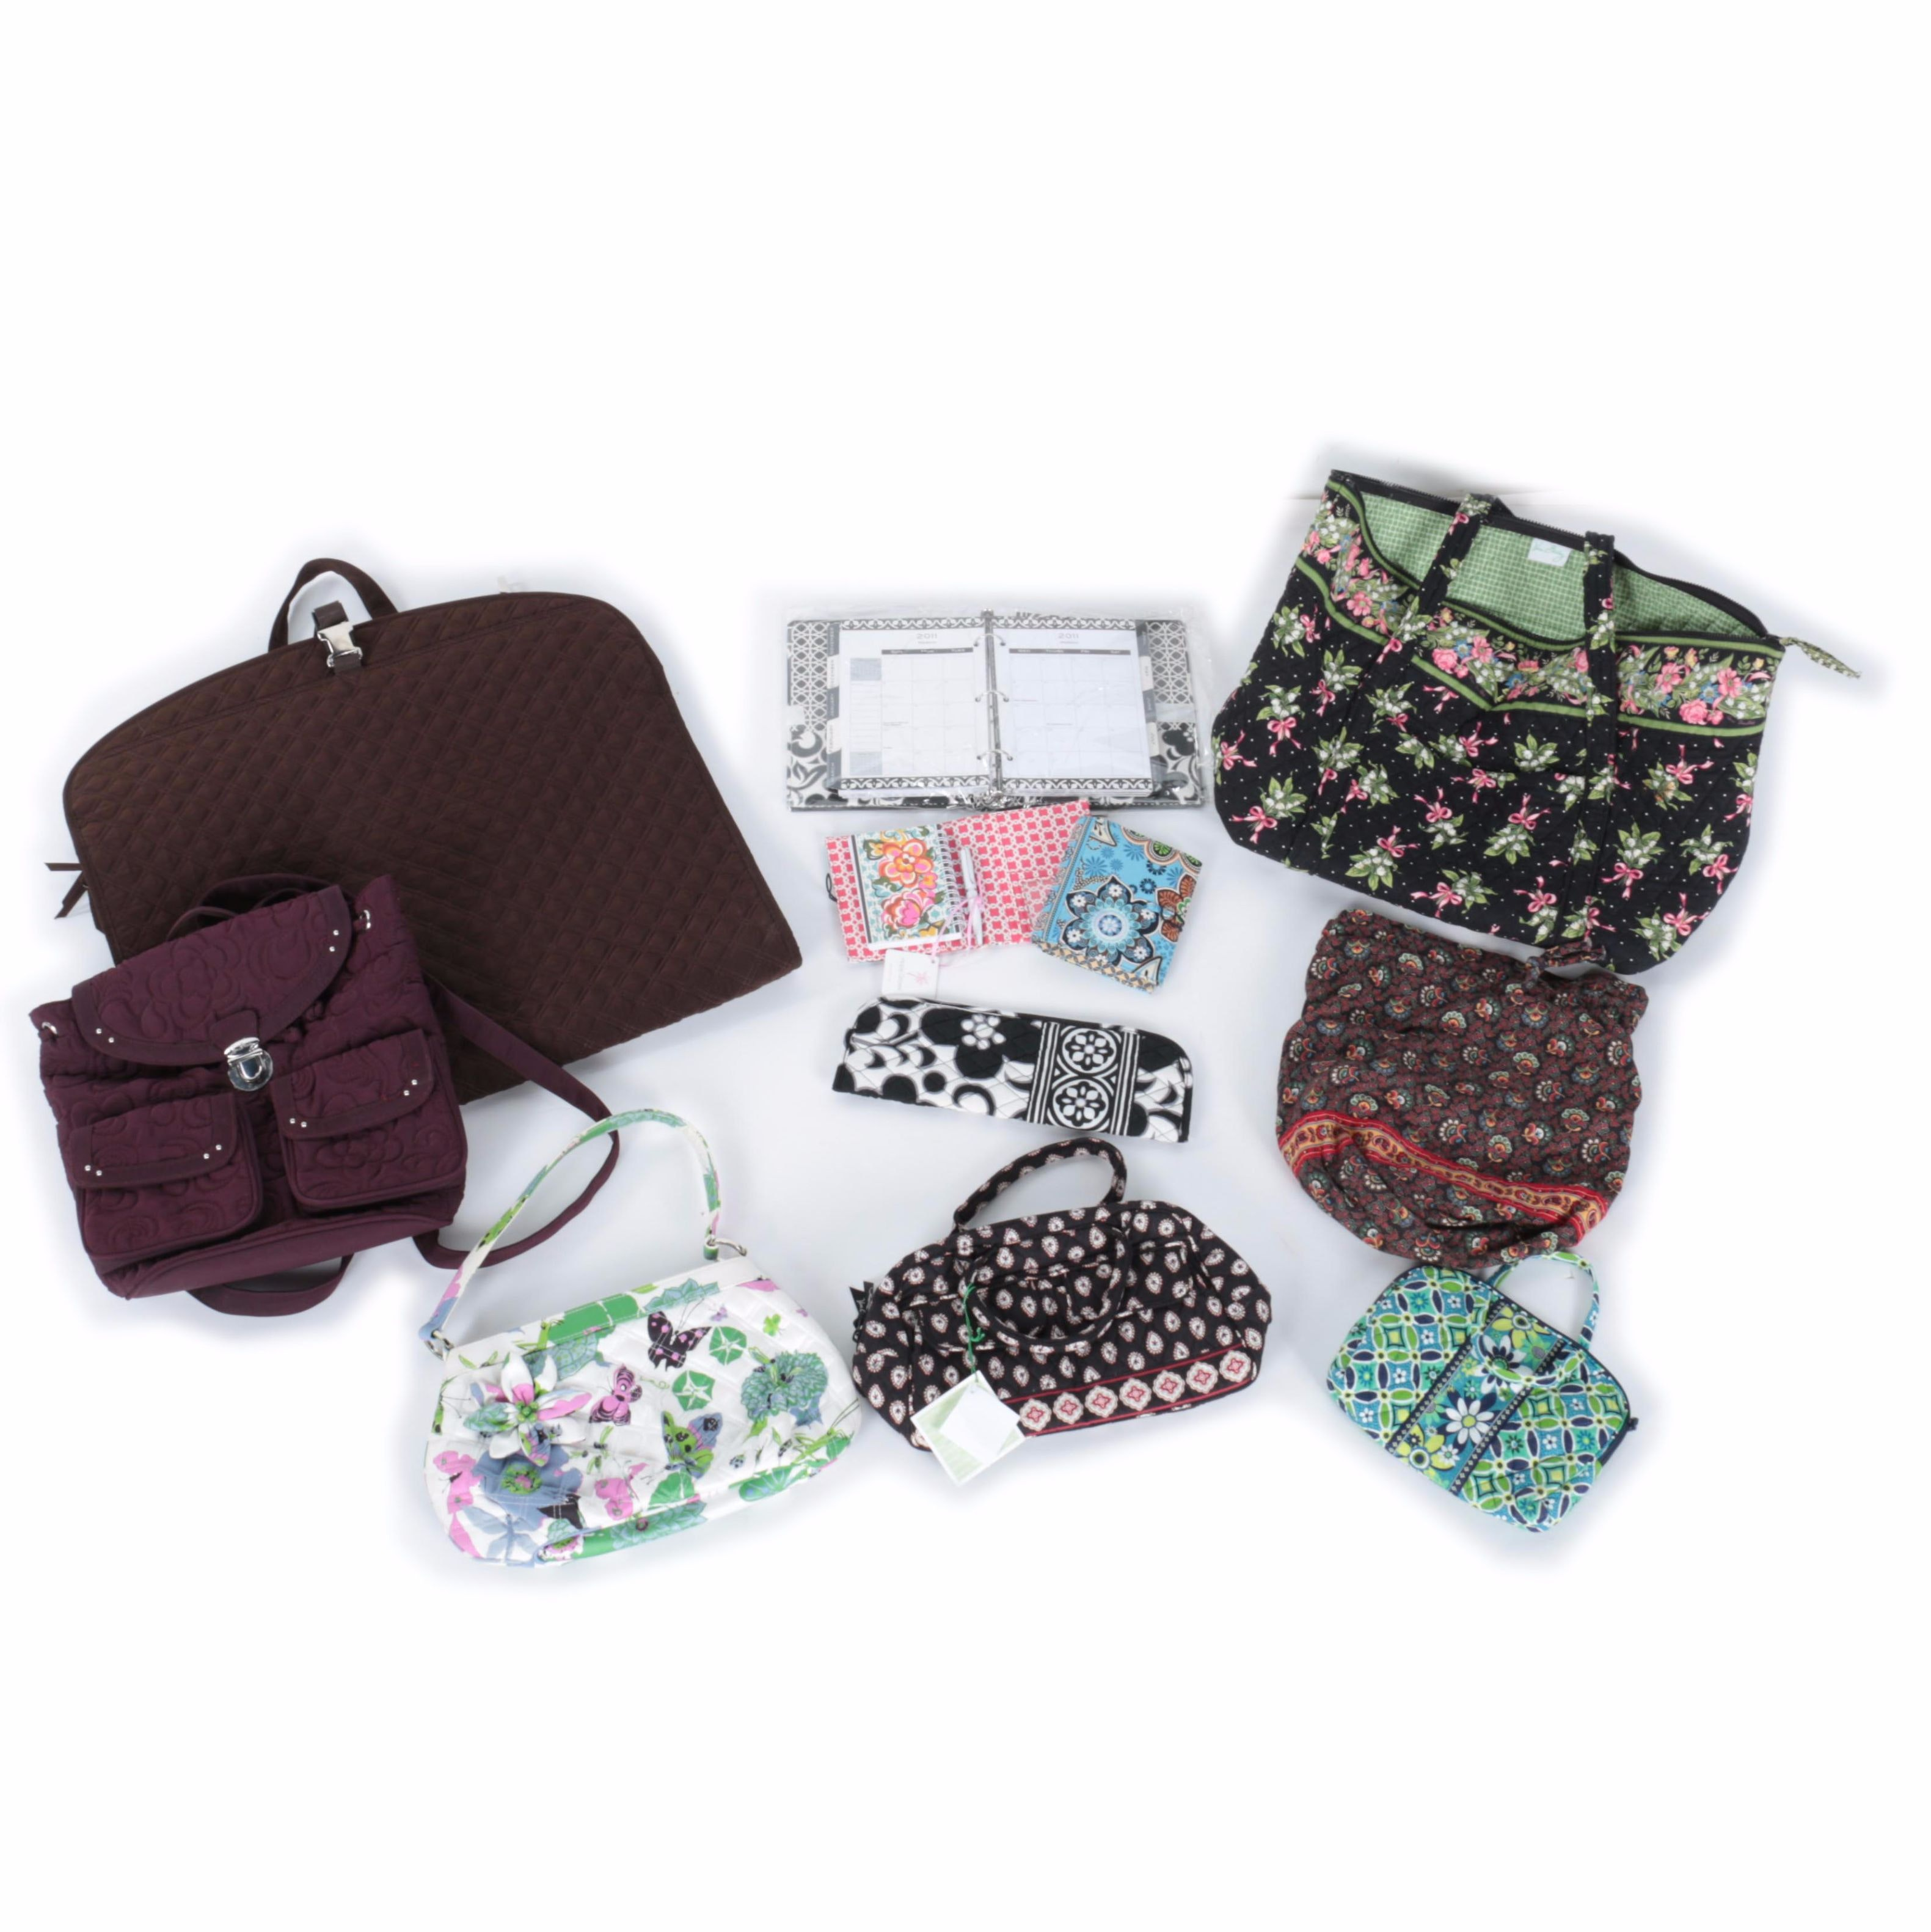 Vera Bradley Bags and Organizer Covers